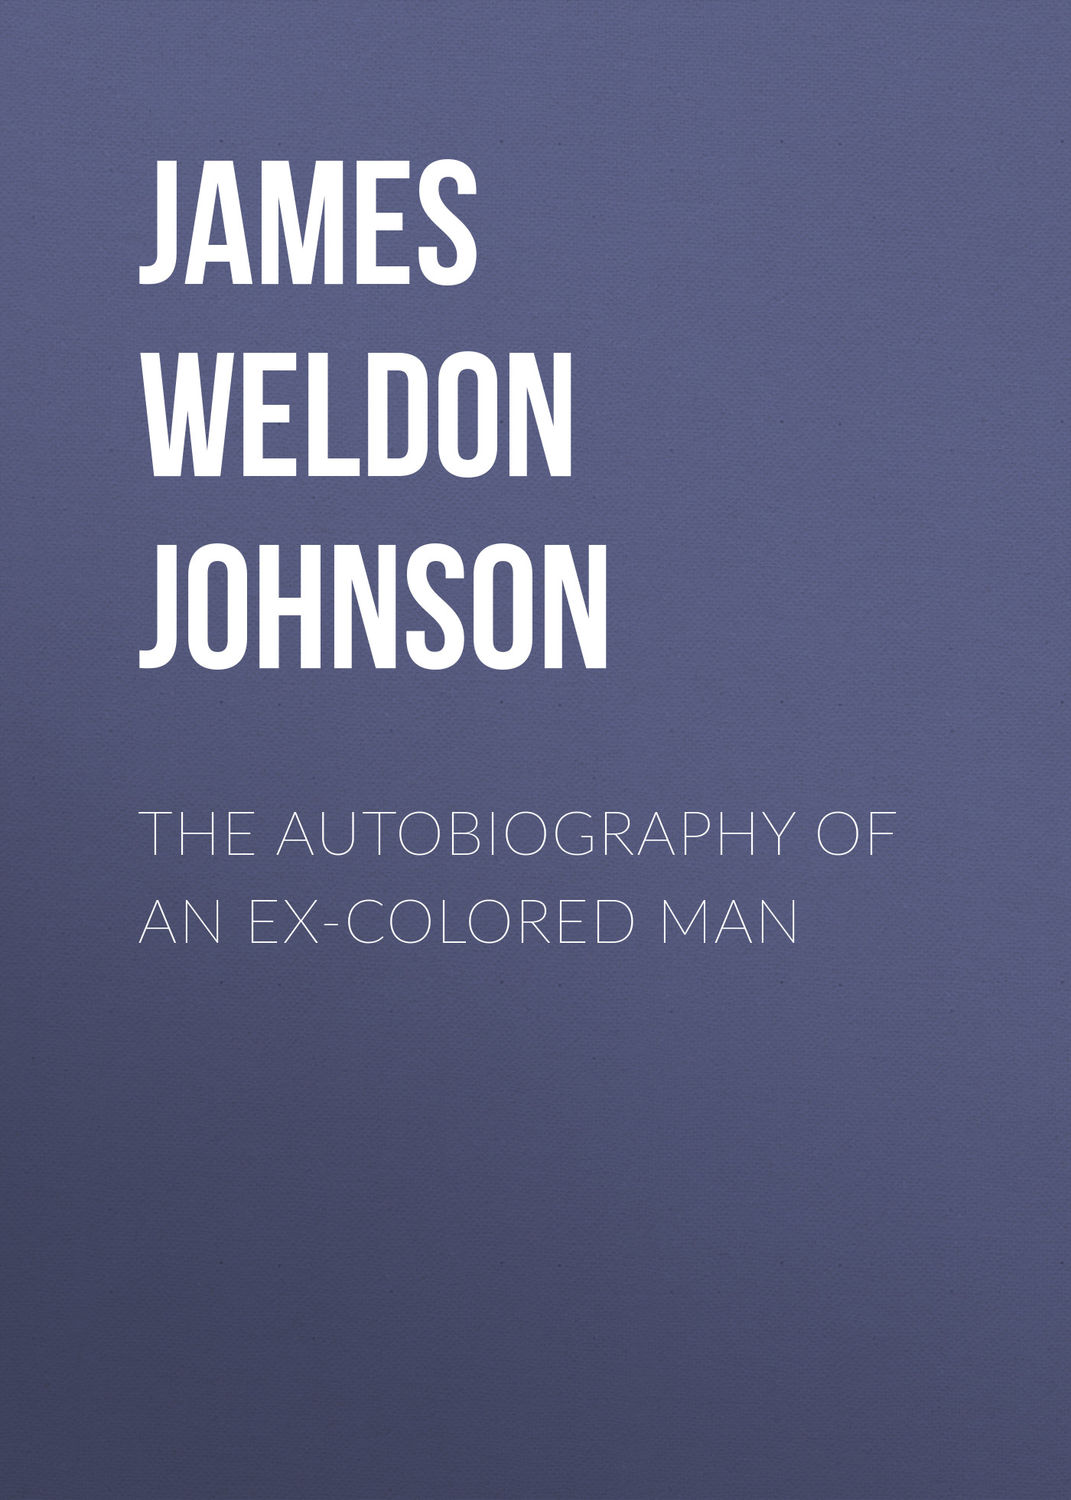 critical essays on the autobiography of an ex-colored man Free essays on the autobiography of an ex colored man get help with your writing 1 through 30.